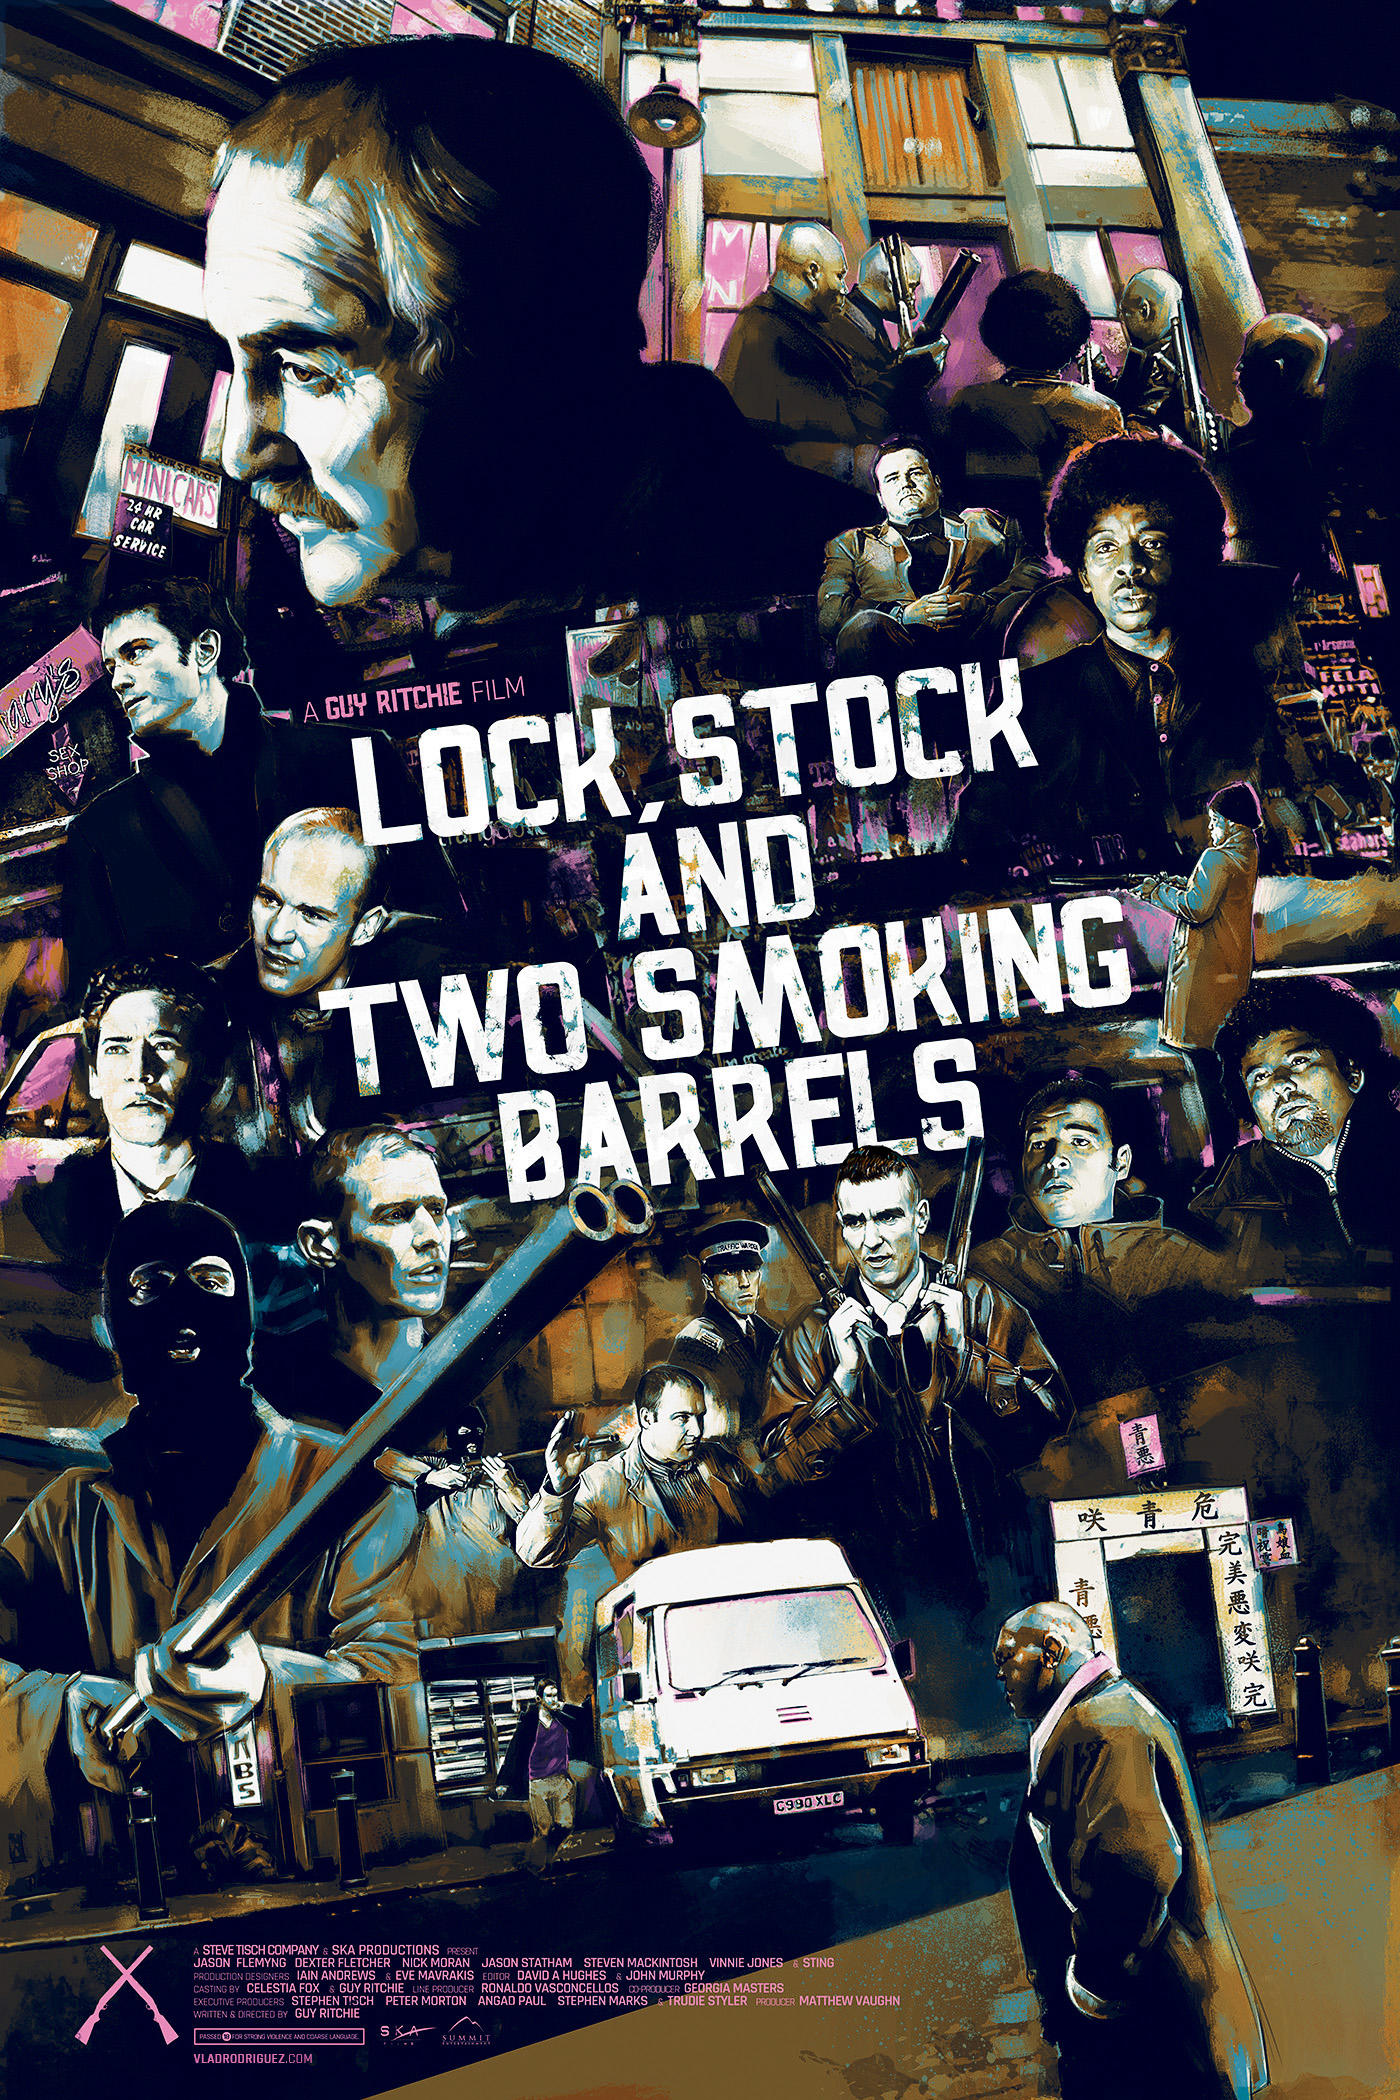 'Snatch' & 'Lock, Stock and Two Smoking Barrels' on Behance